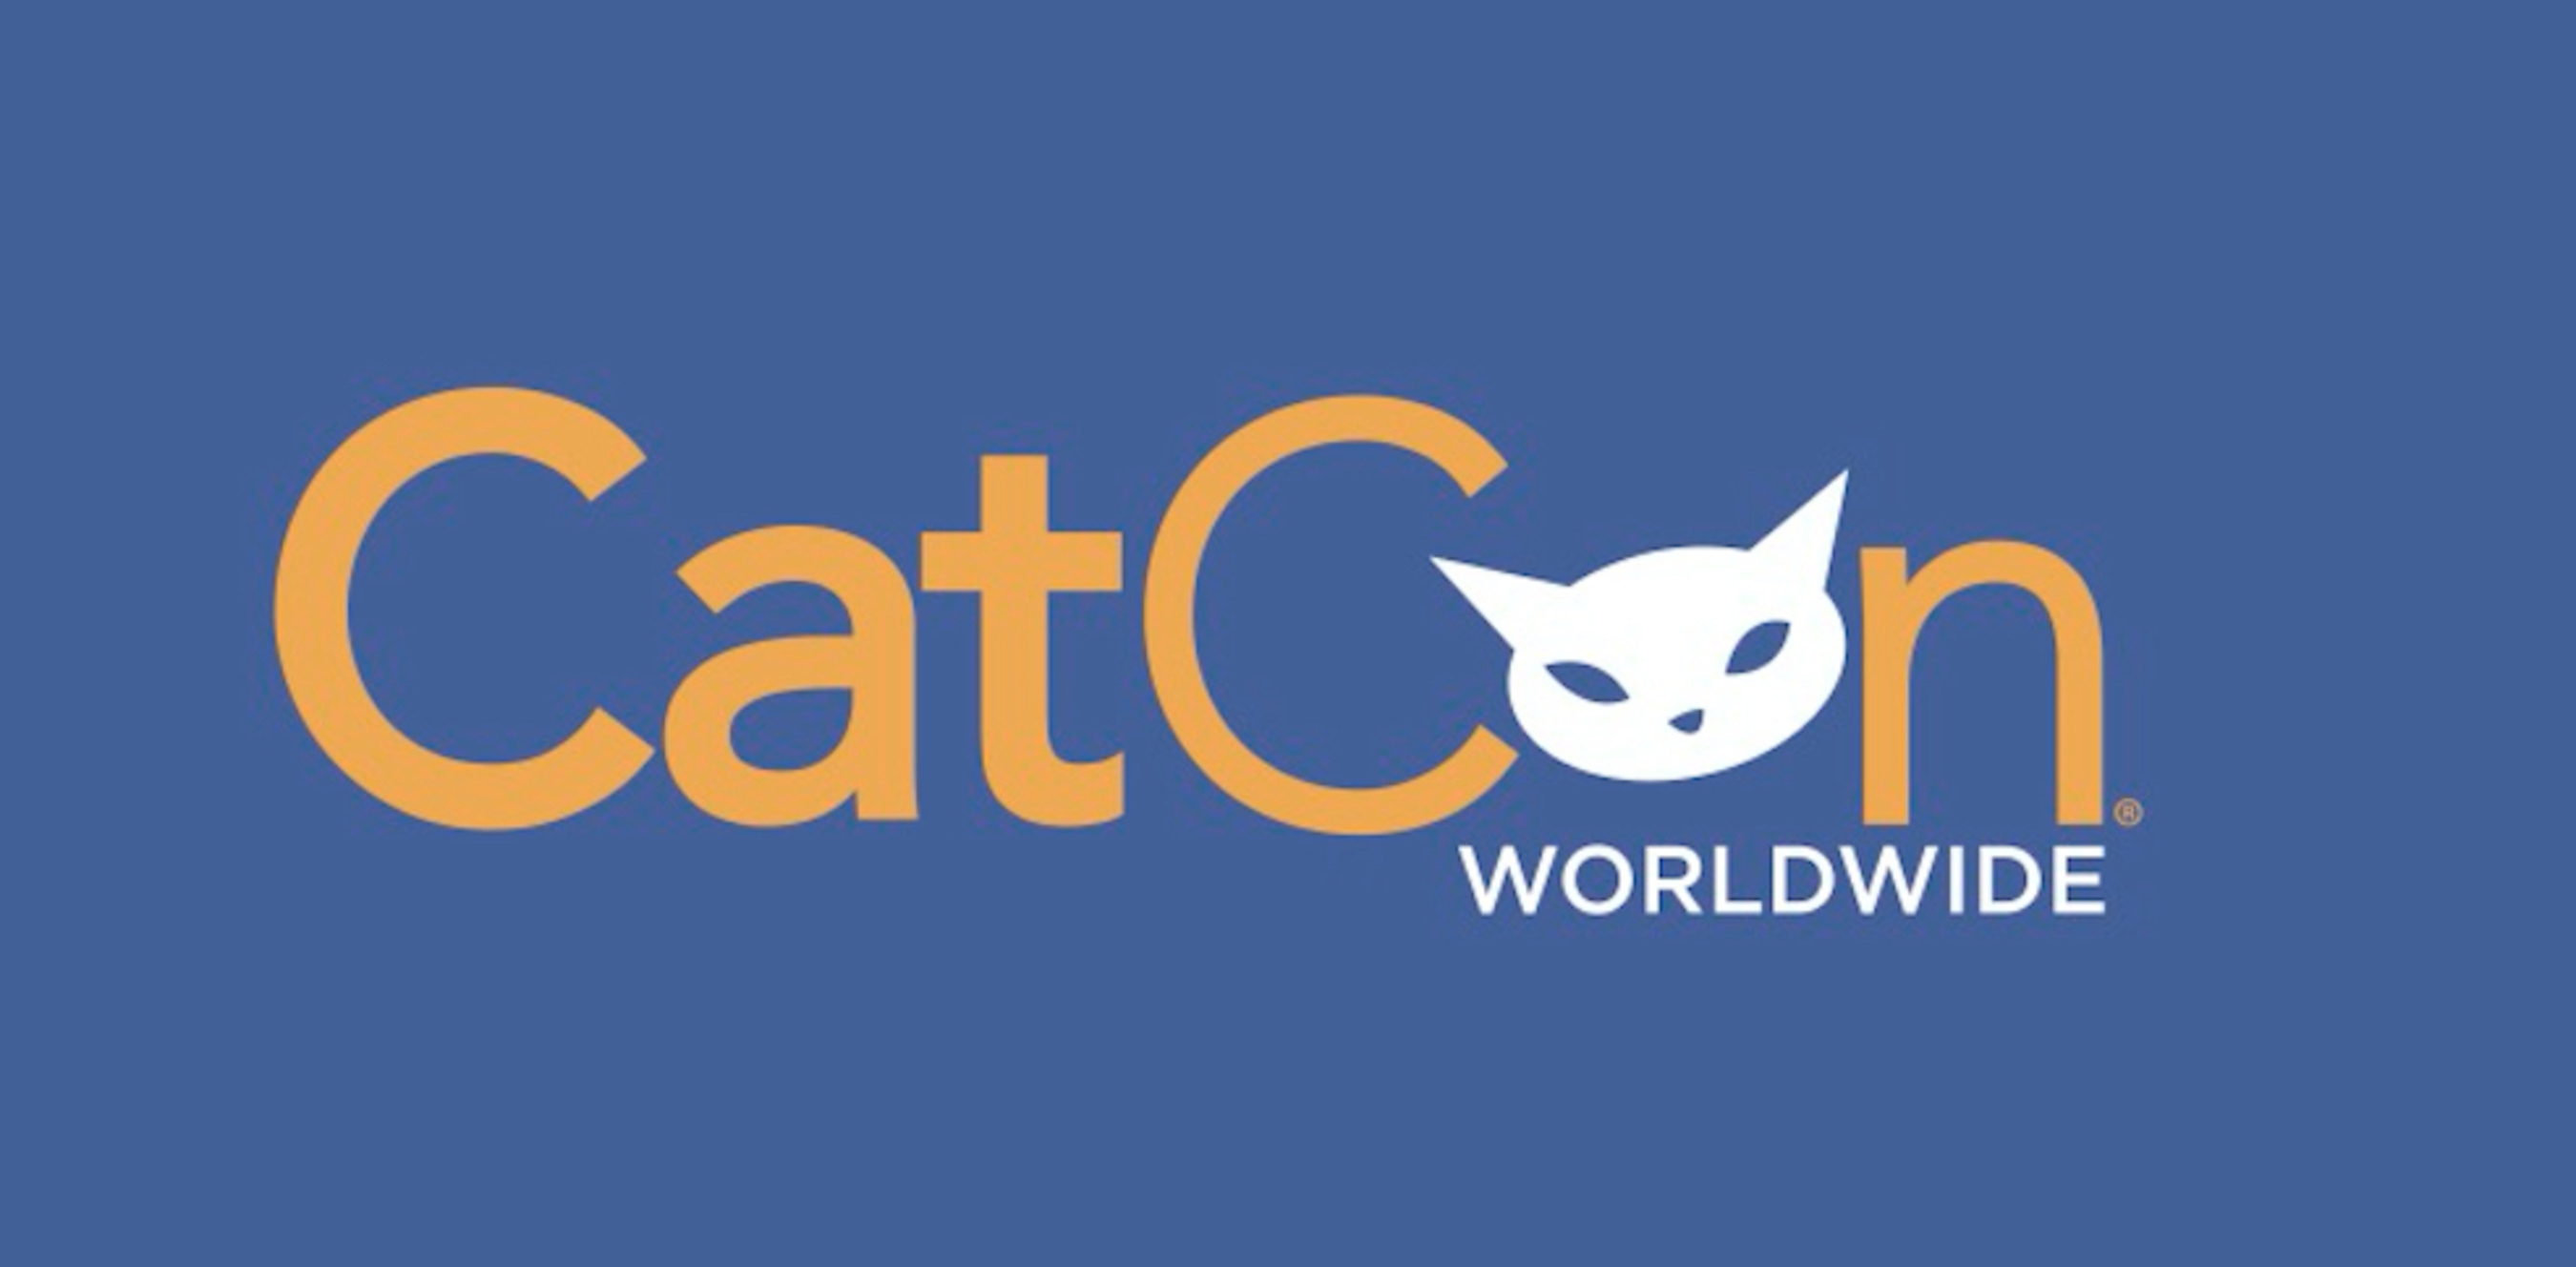 CatCon' Announces 2017 Roster With New Venue; Talent And Events